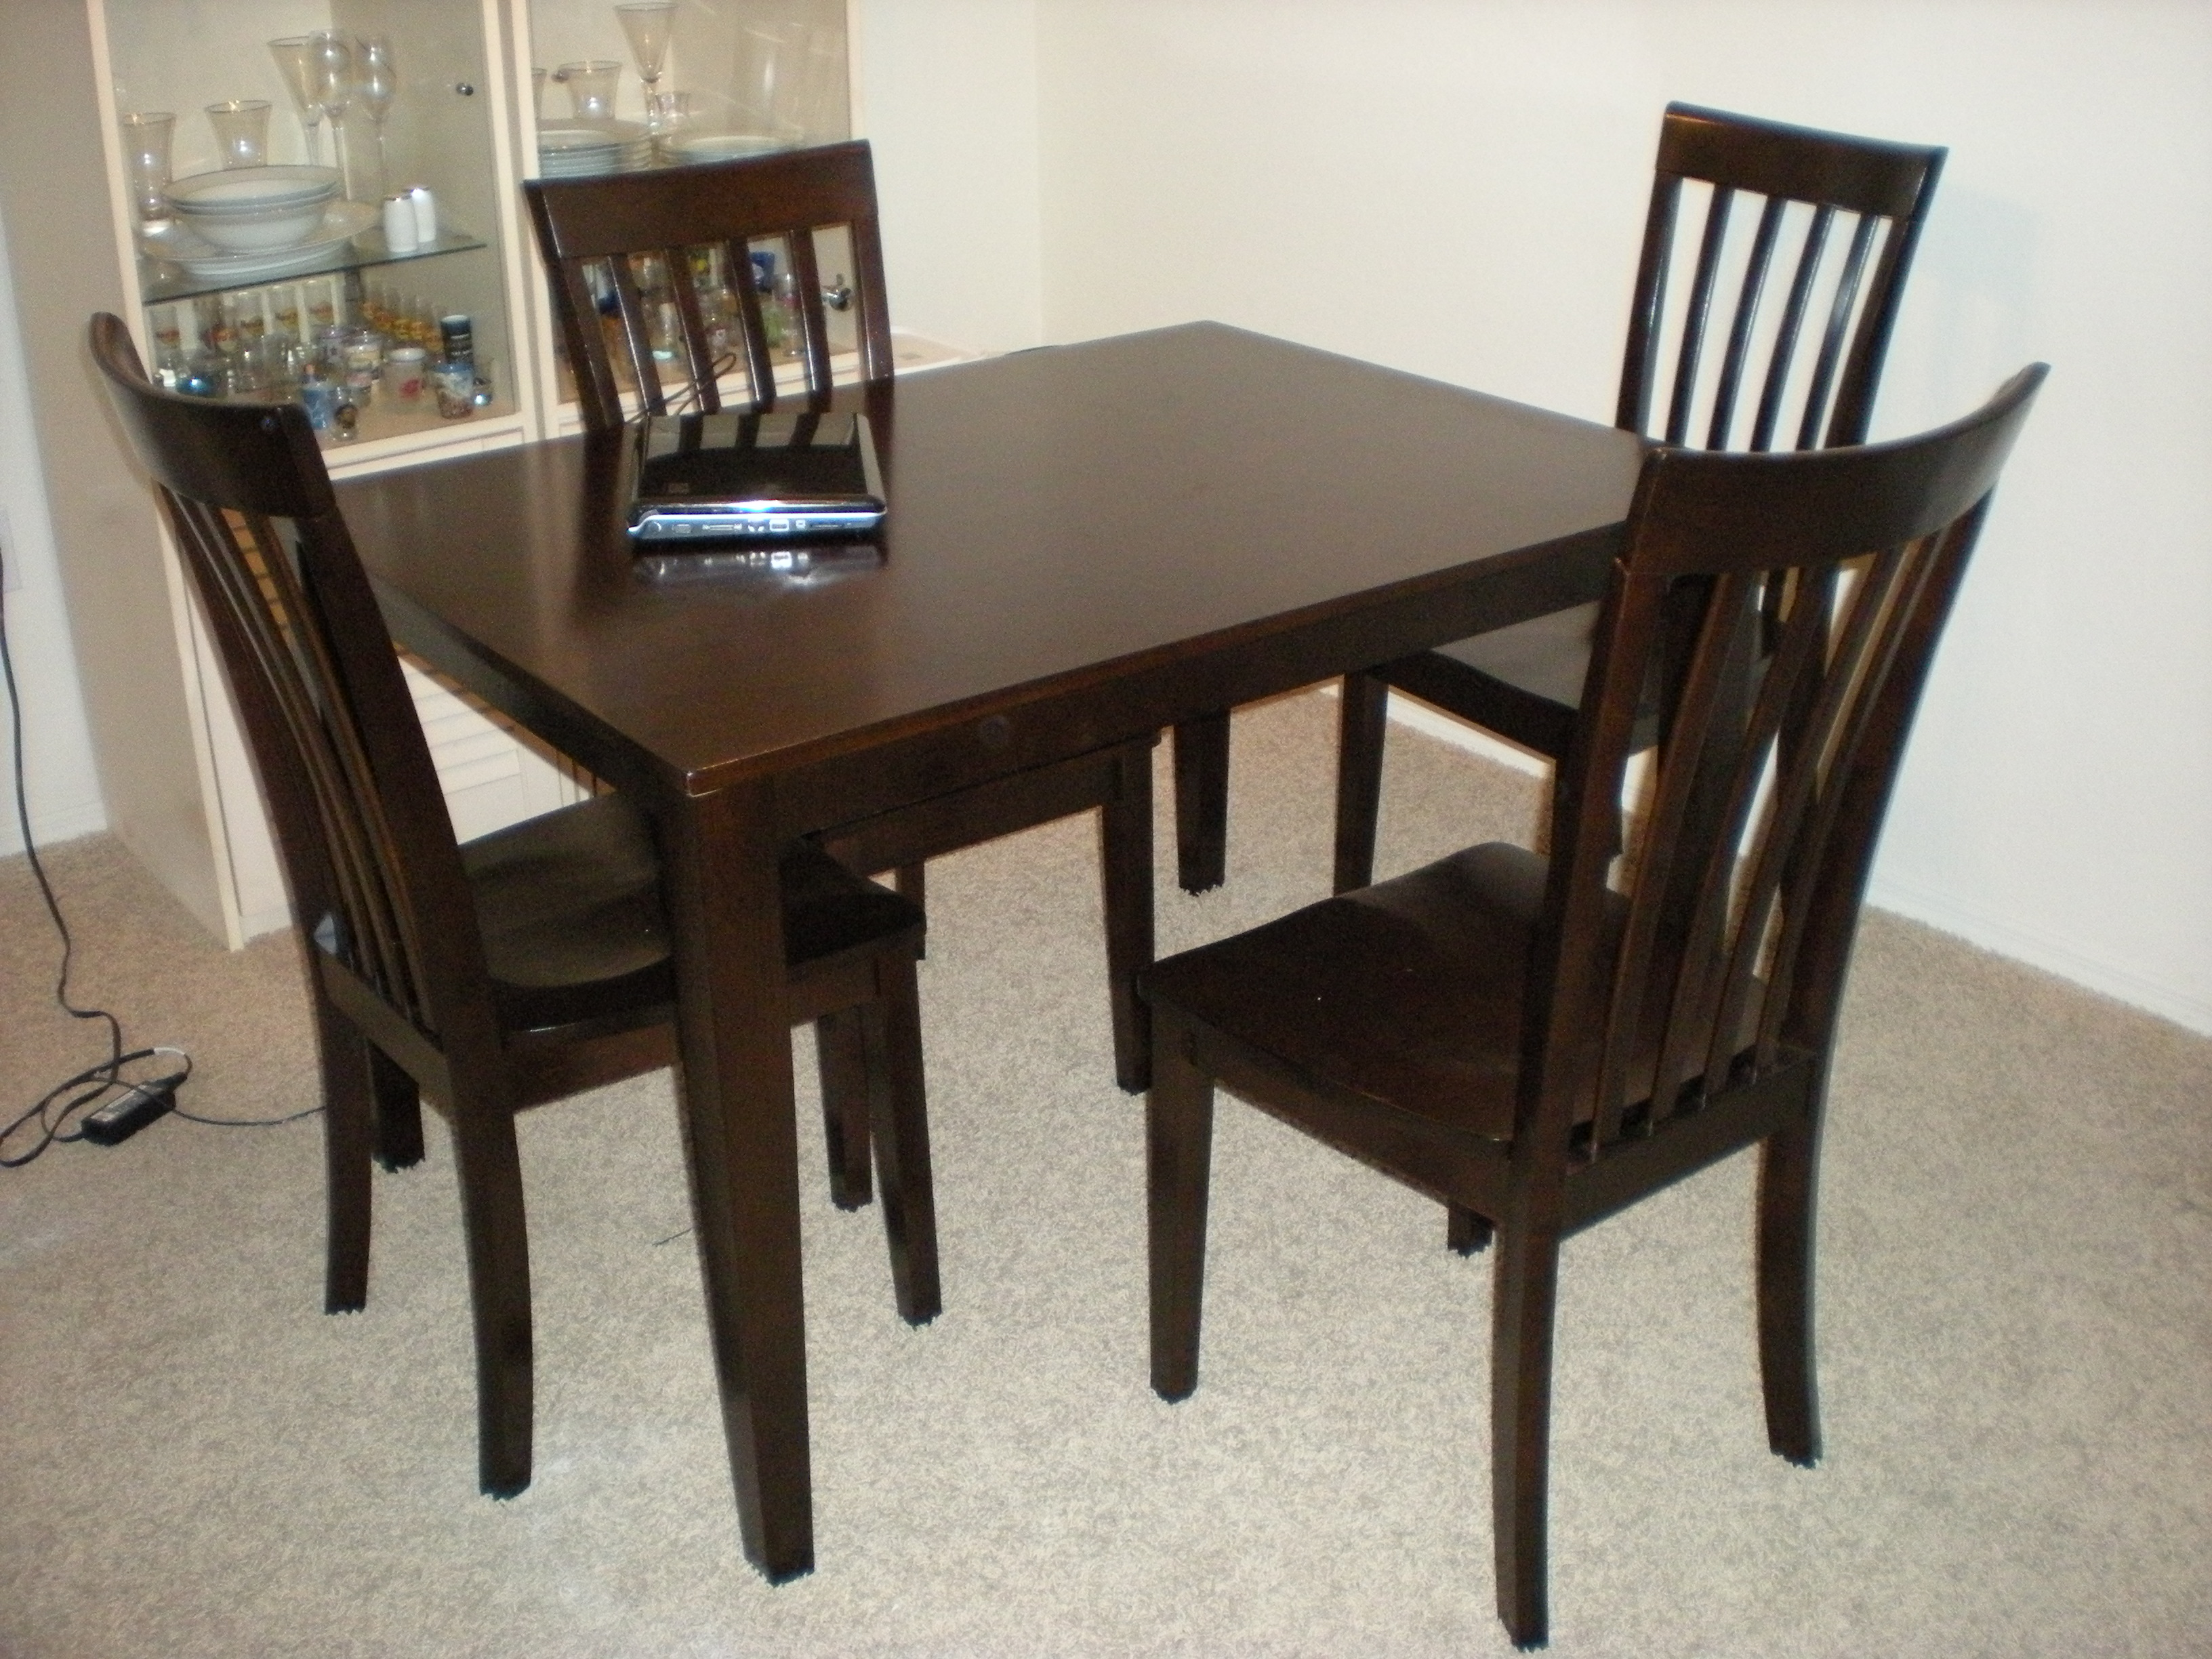 Dark Wooden Table ~ Cheap dark wood furniture at the galleria